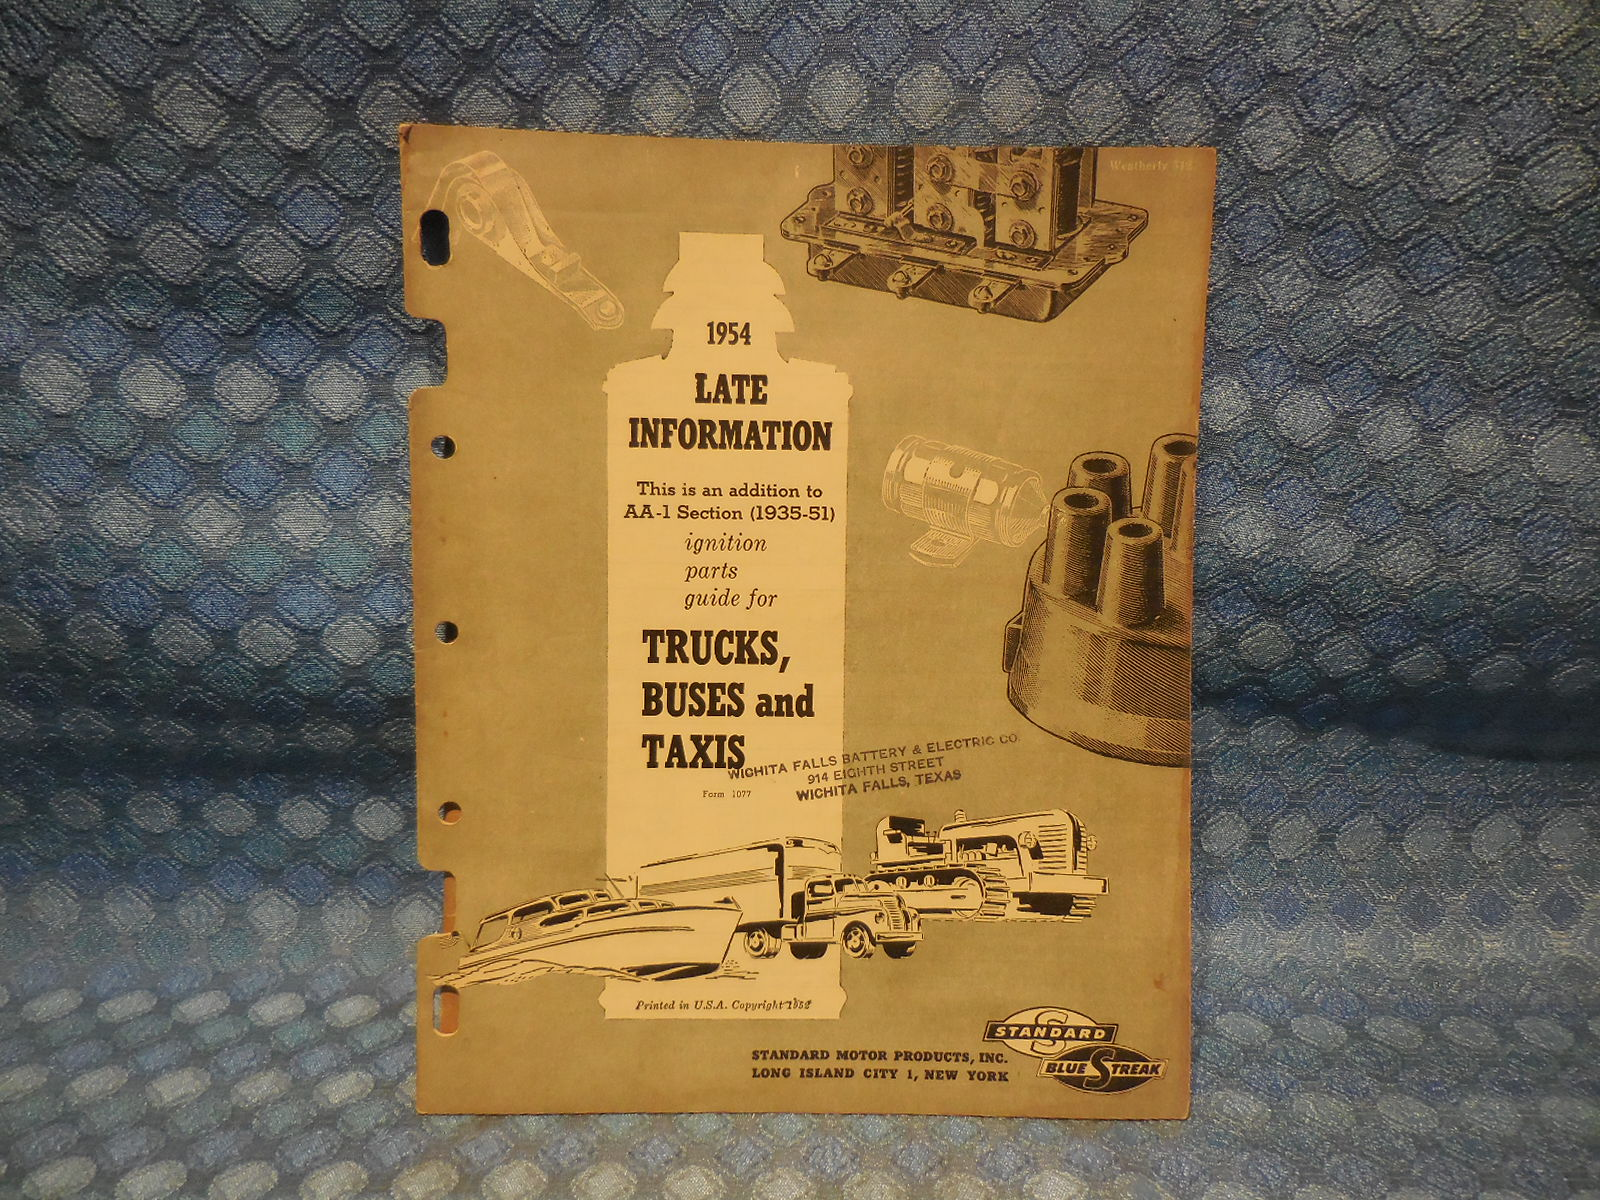 1951 Reo Wiring Diagram Opinions About 2014 R1200rt 1954 Blue Streak Original Truck Ignition Parts Catalog Gmc Ford Rh Nostexasparts Com Simple Diagrams Basic Electrical Schematic